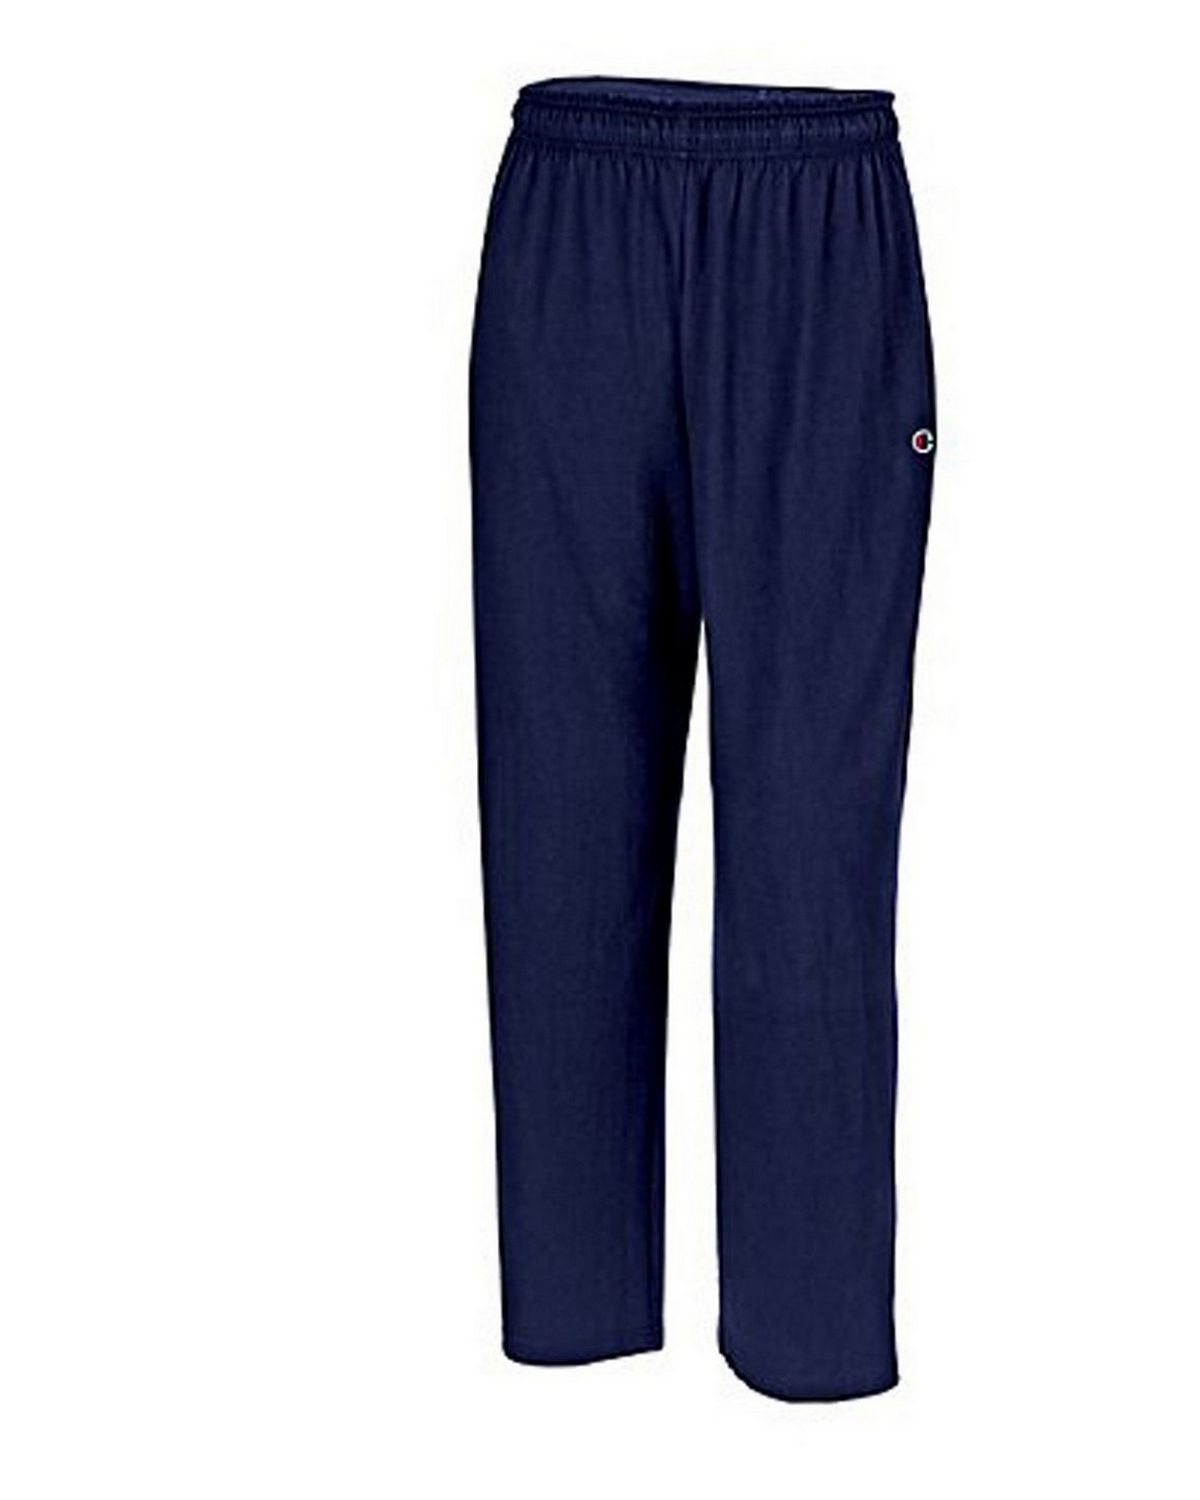 Champion P7309 Authentic Mens Open Bottom Jersey Pants - Oxford Grey - XXL P7309